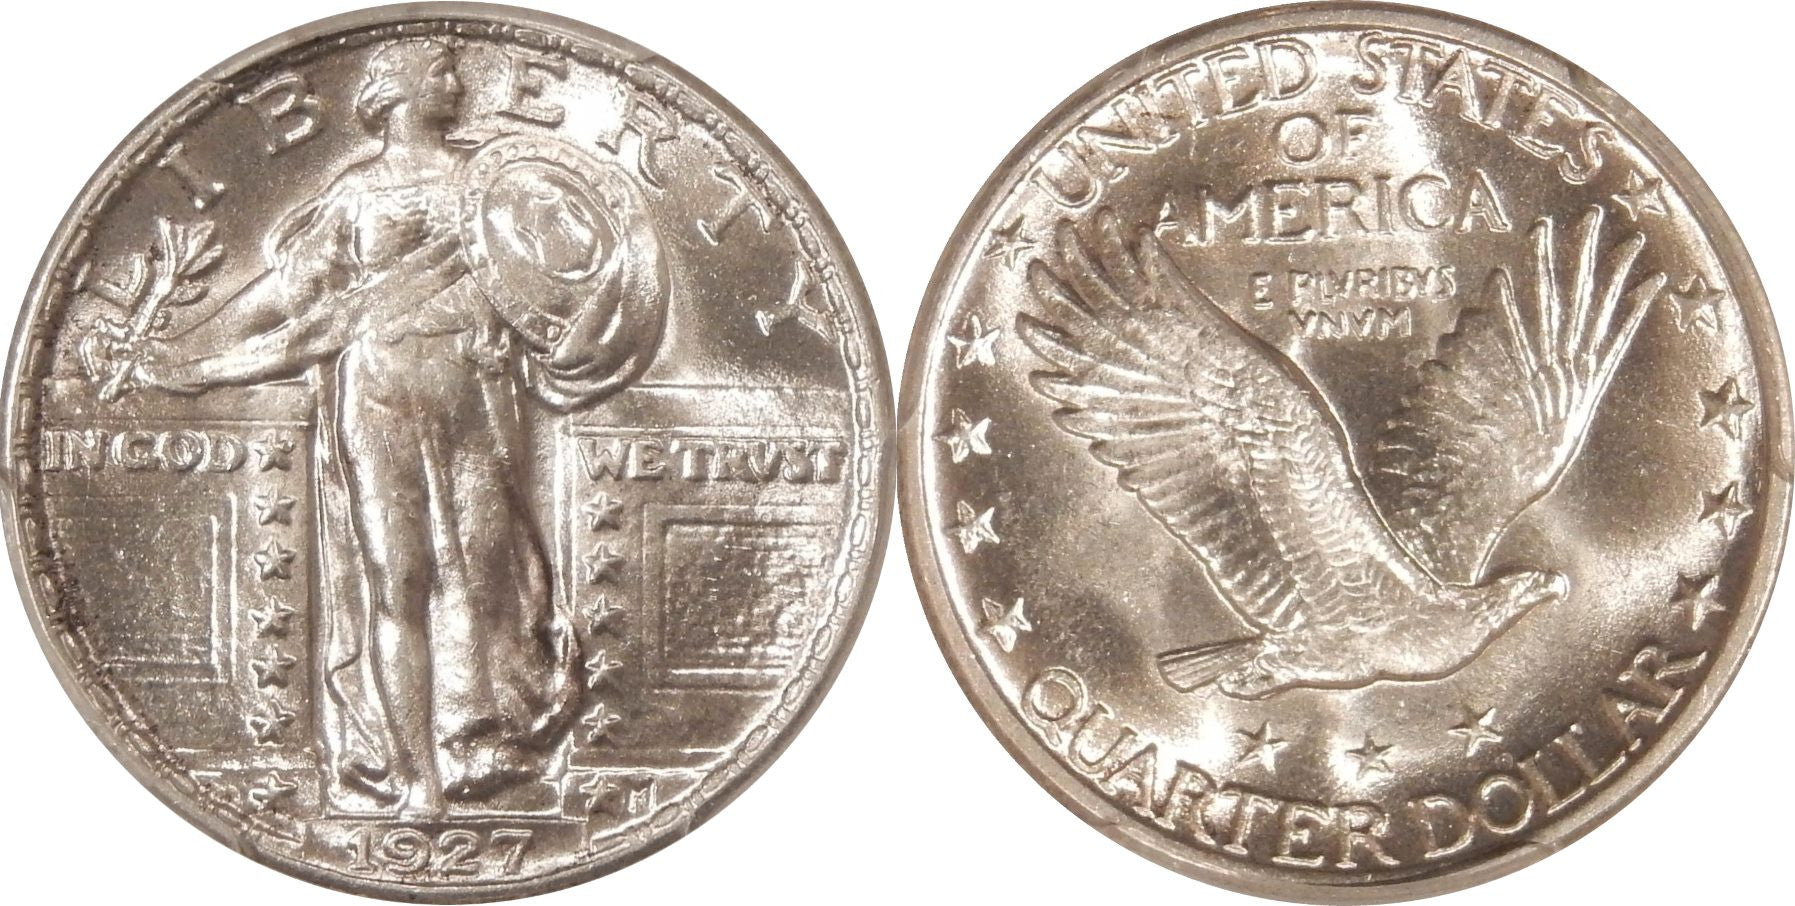 Standing Liberty Quarter MS-63 Condition